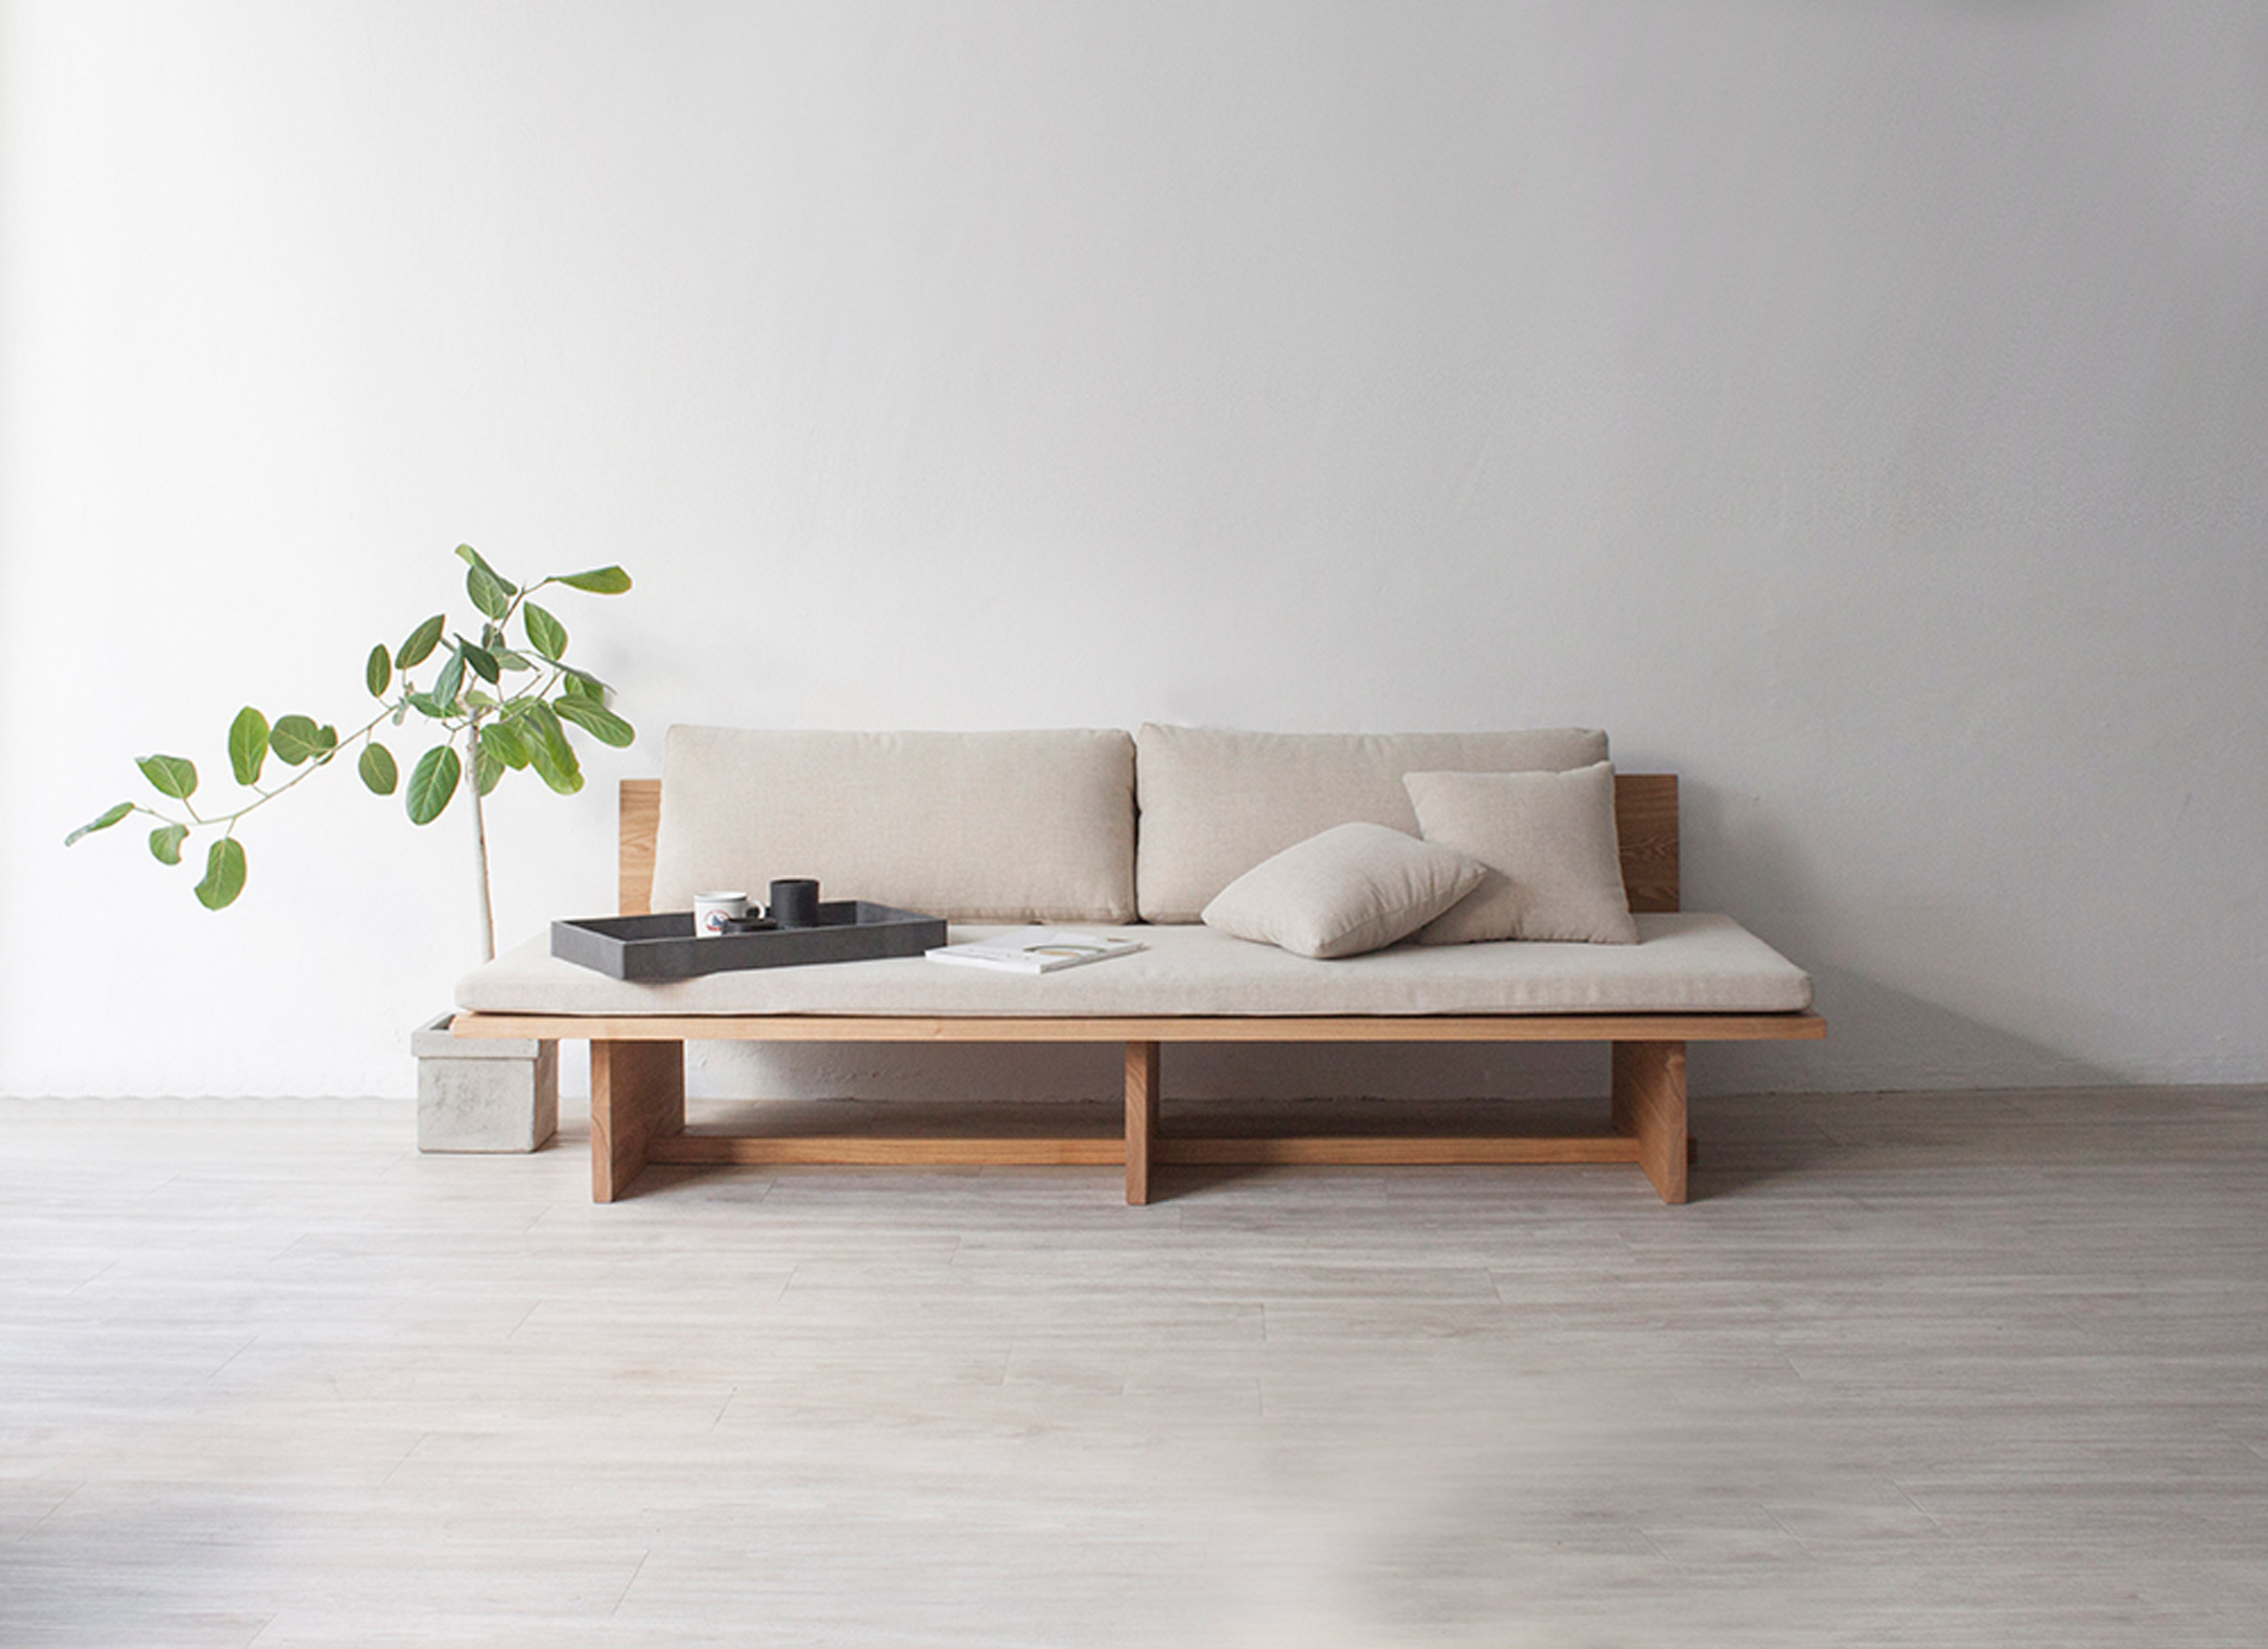 The sofa is made of wood and soft cushions, which are removable if you want to clean them